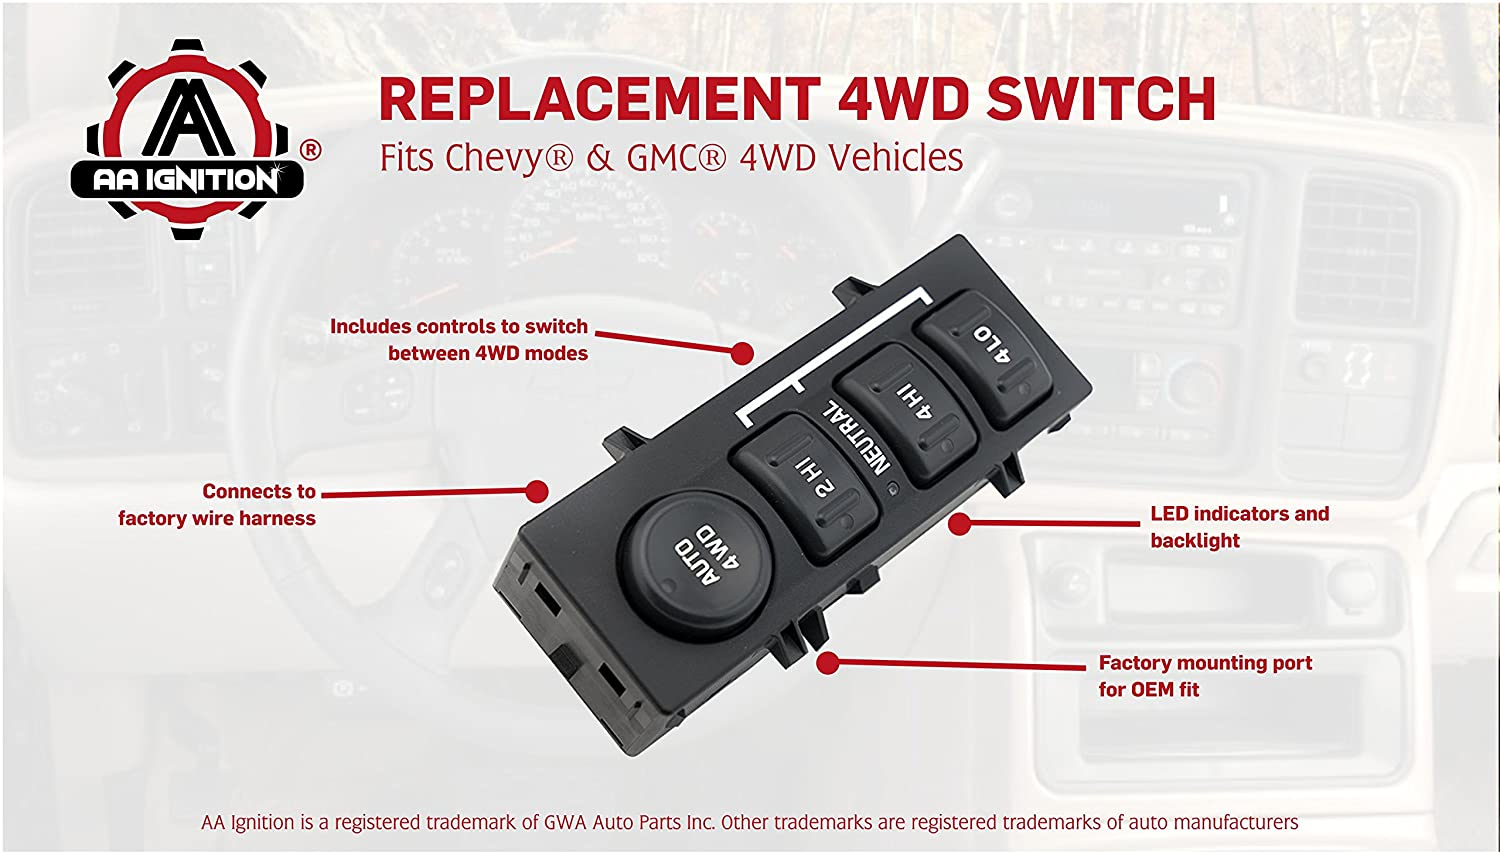 Amazon.com: 4WD 4x4 Switch - Replaces 901-072, 19168767, 15709327, 901-062  - Fits Chevy Silverado 1500, 2500HD Suburban, Avalanche, GMC Sierra 1500,  2500, ...